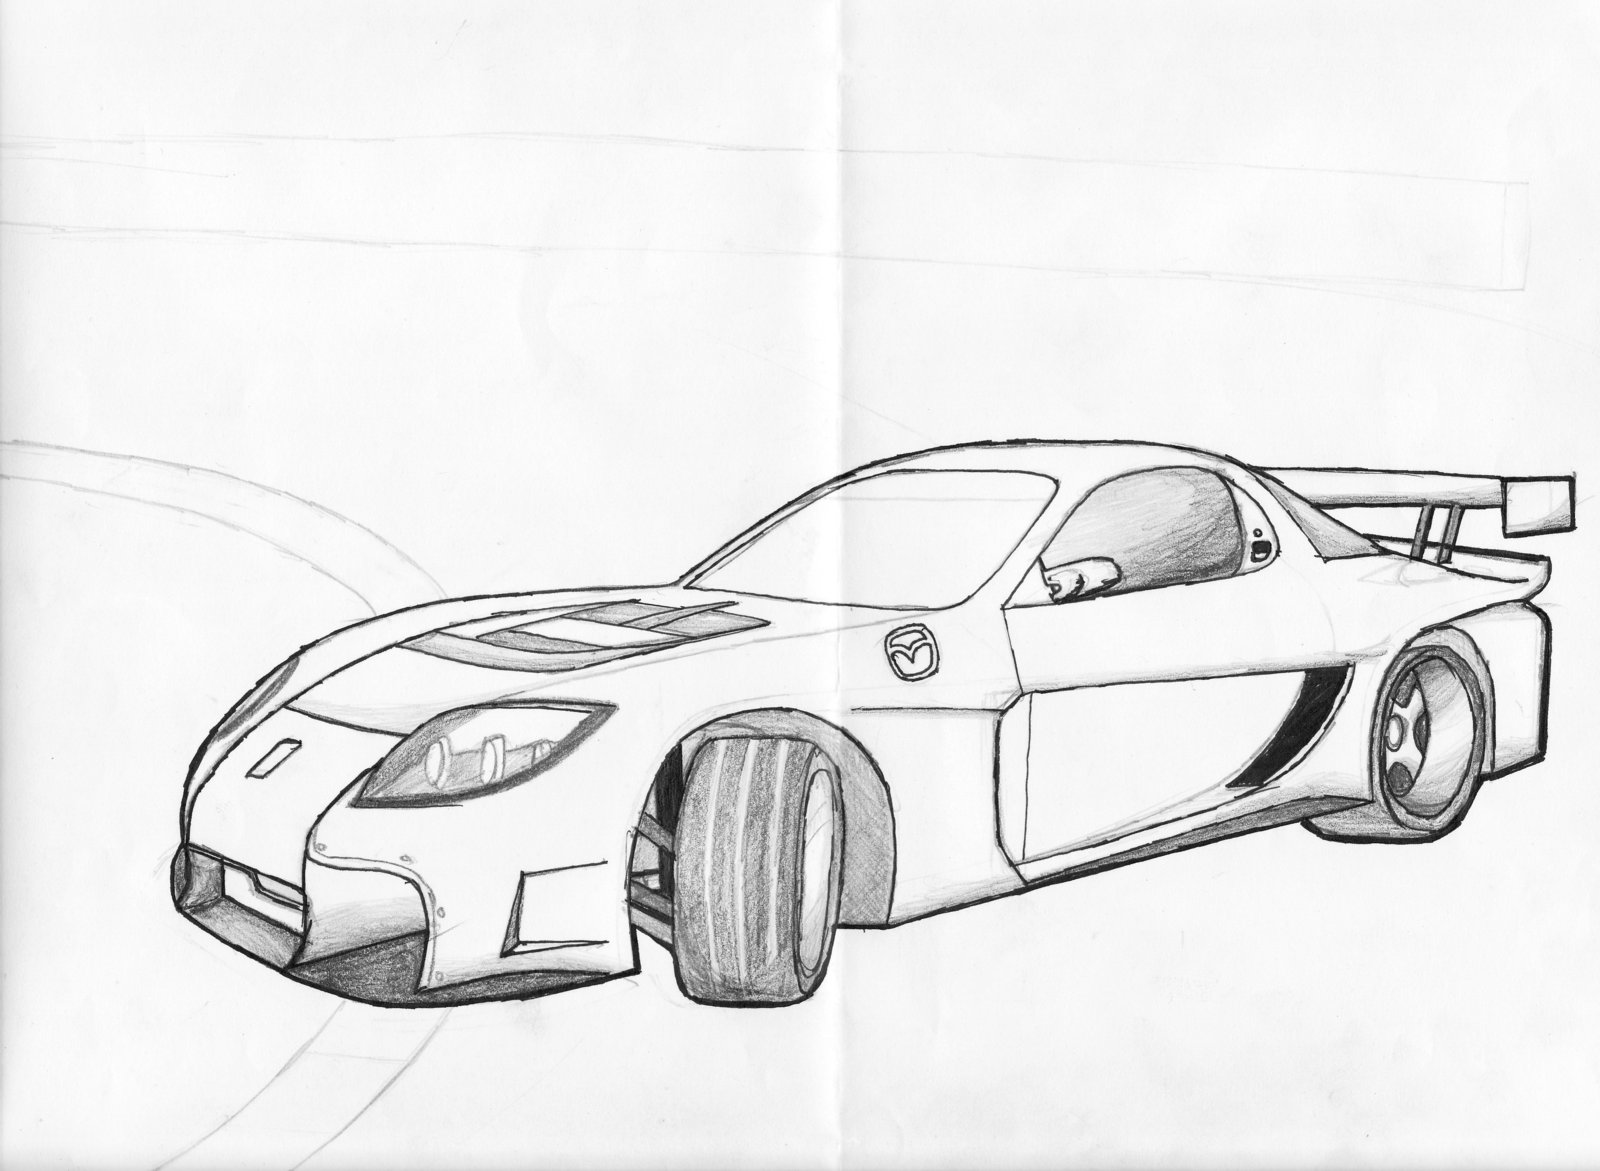 Mazda Rx7 Drawing At Free For Personal Use Tribute 2002 Vacuum Line Diagram Printable Wiring 1600x1171 Rx 7 Drift By Speedy 08